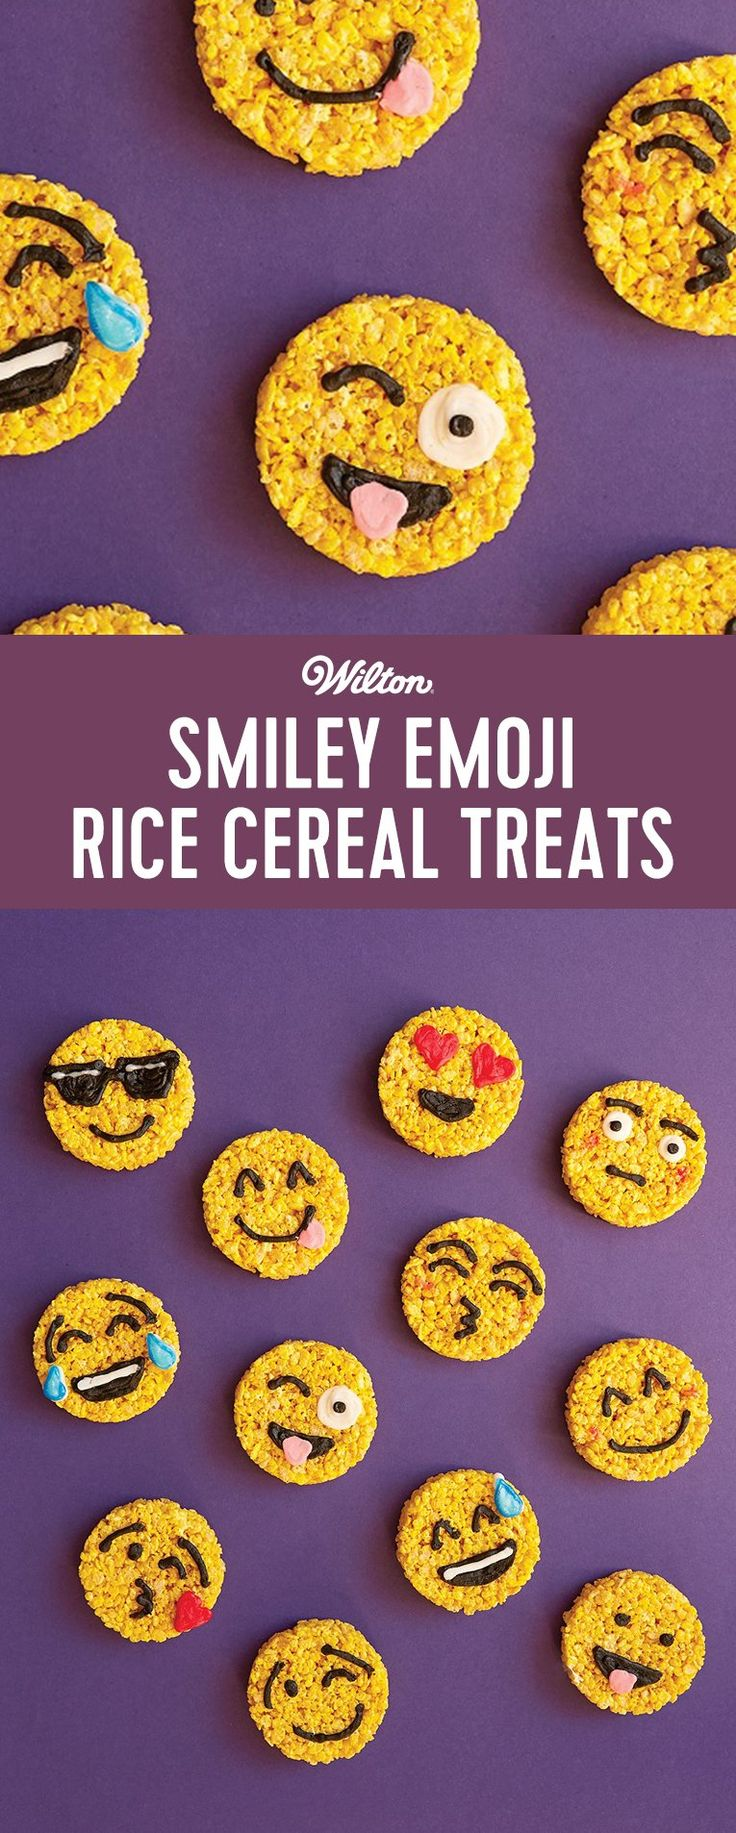 Learn how to make these cute Smiley Emoji Rice Cereal Treats from the book Treat Yourself by Jessica Siskin, a.k.a. Mister Krisp! Your little ones will enjoy making and eating them!